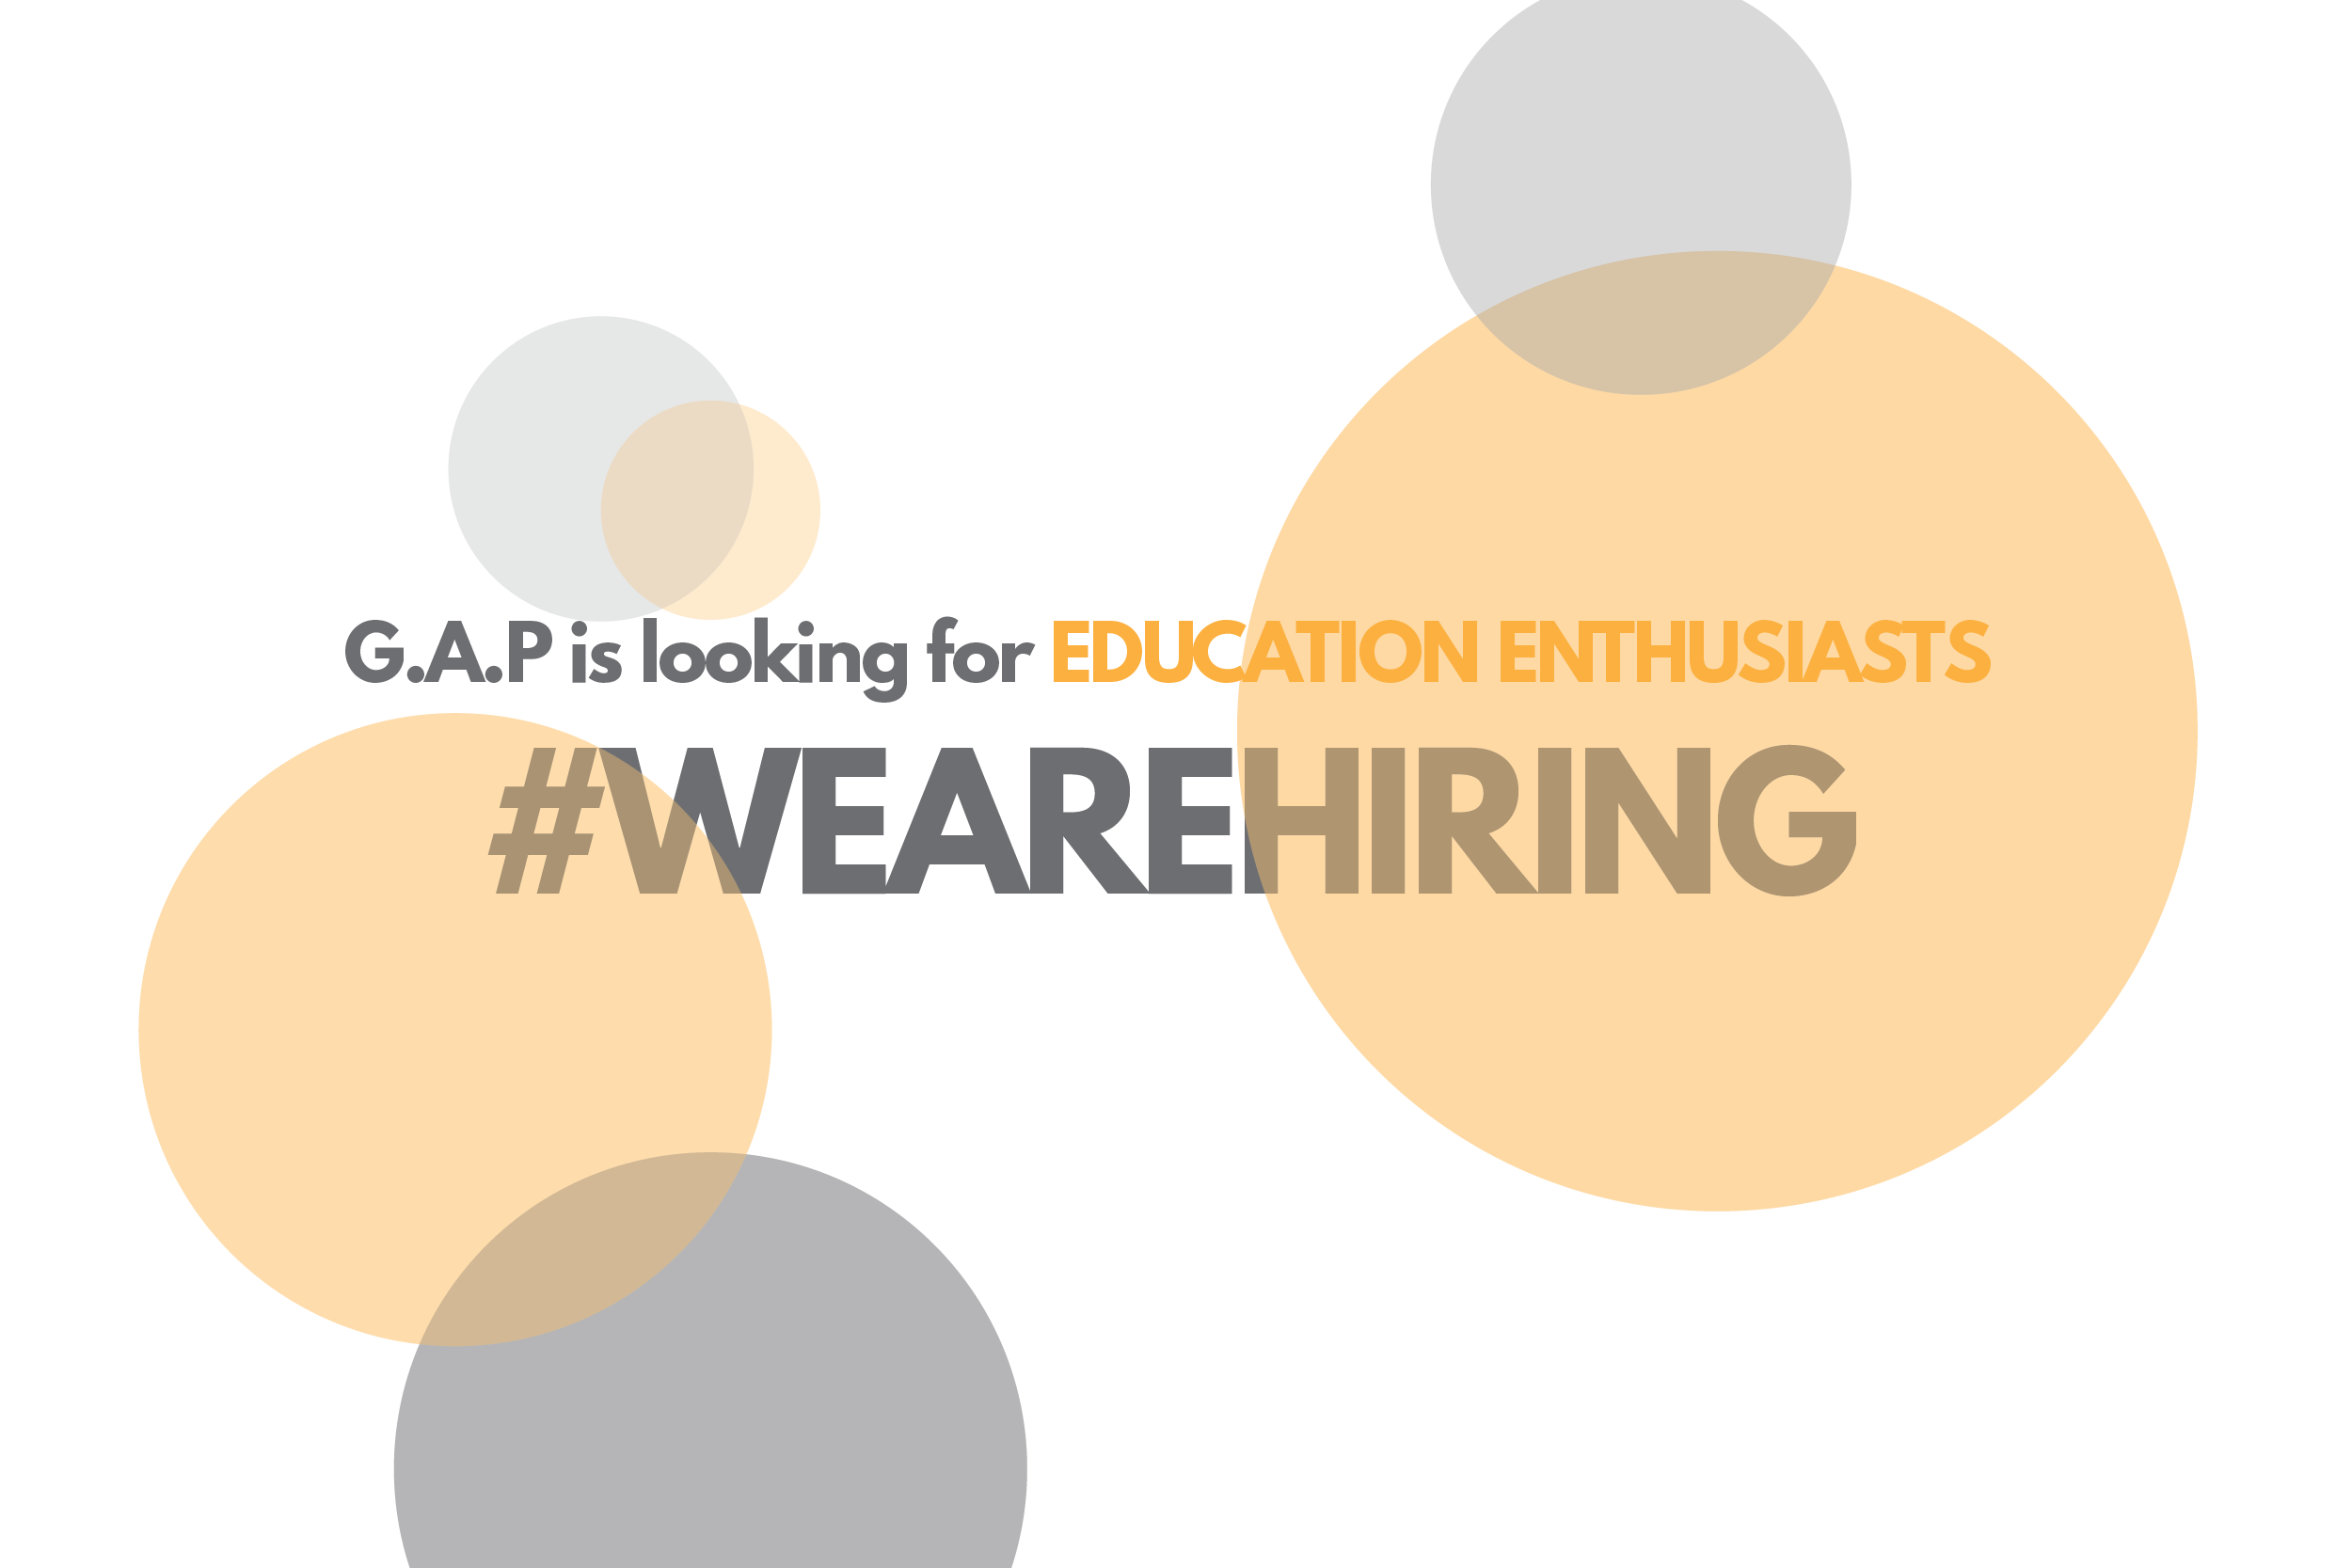 WEAREHIRING - G A P is looking for EDUCATION ENTHUSIASTS - G A P